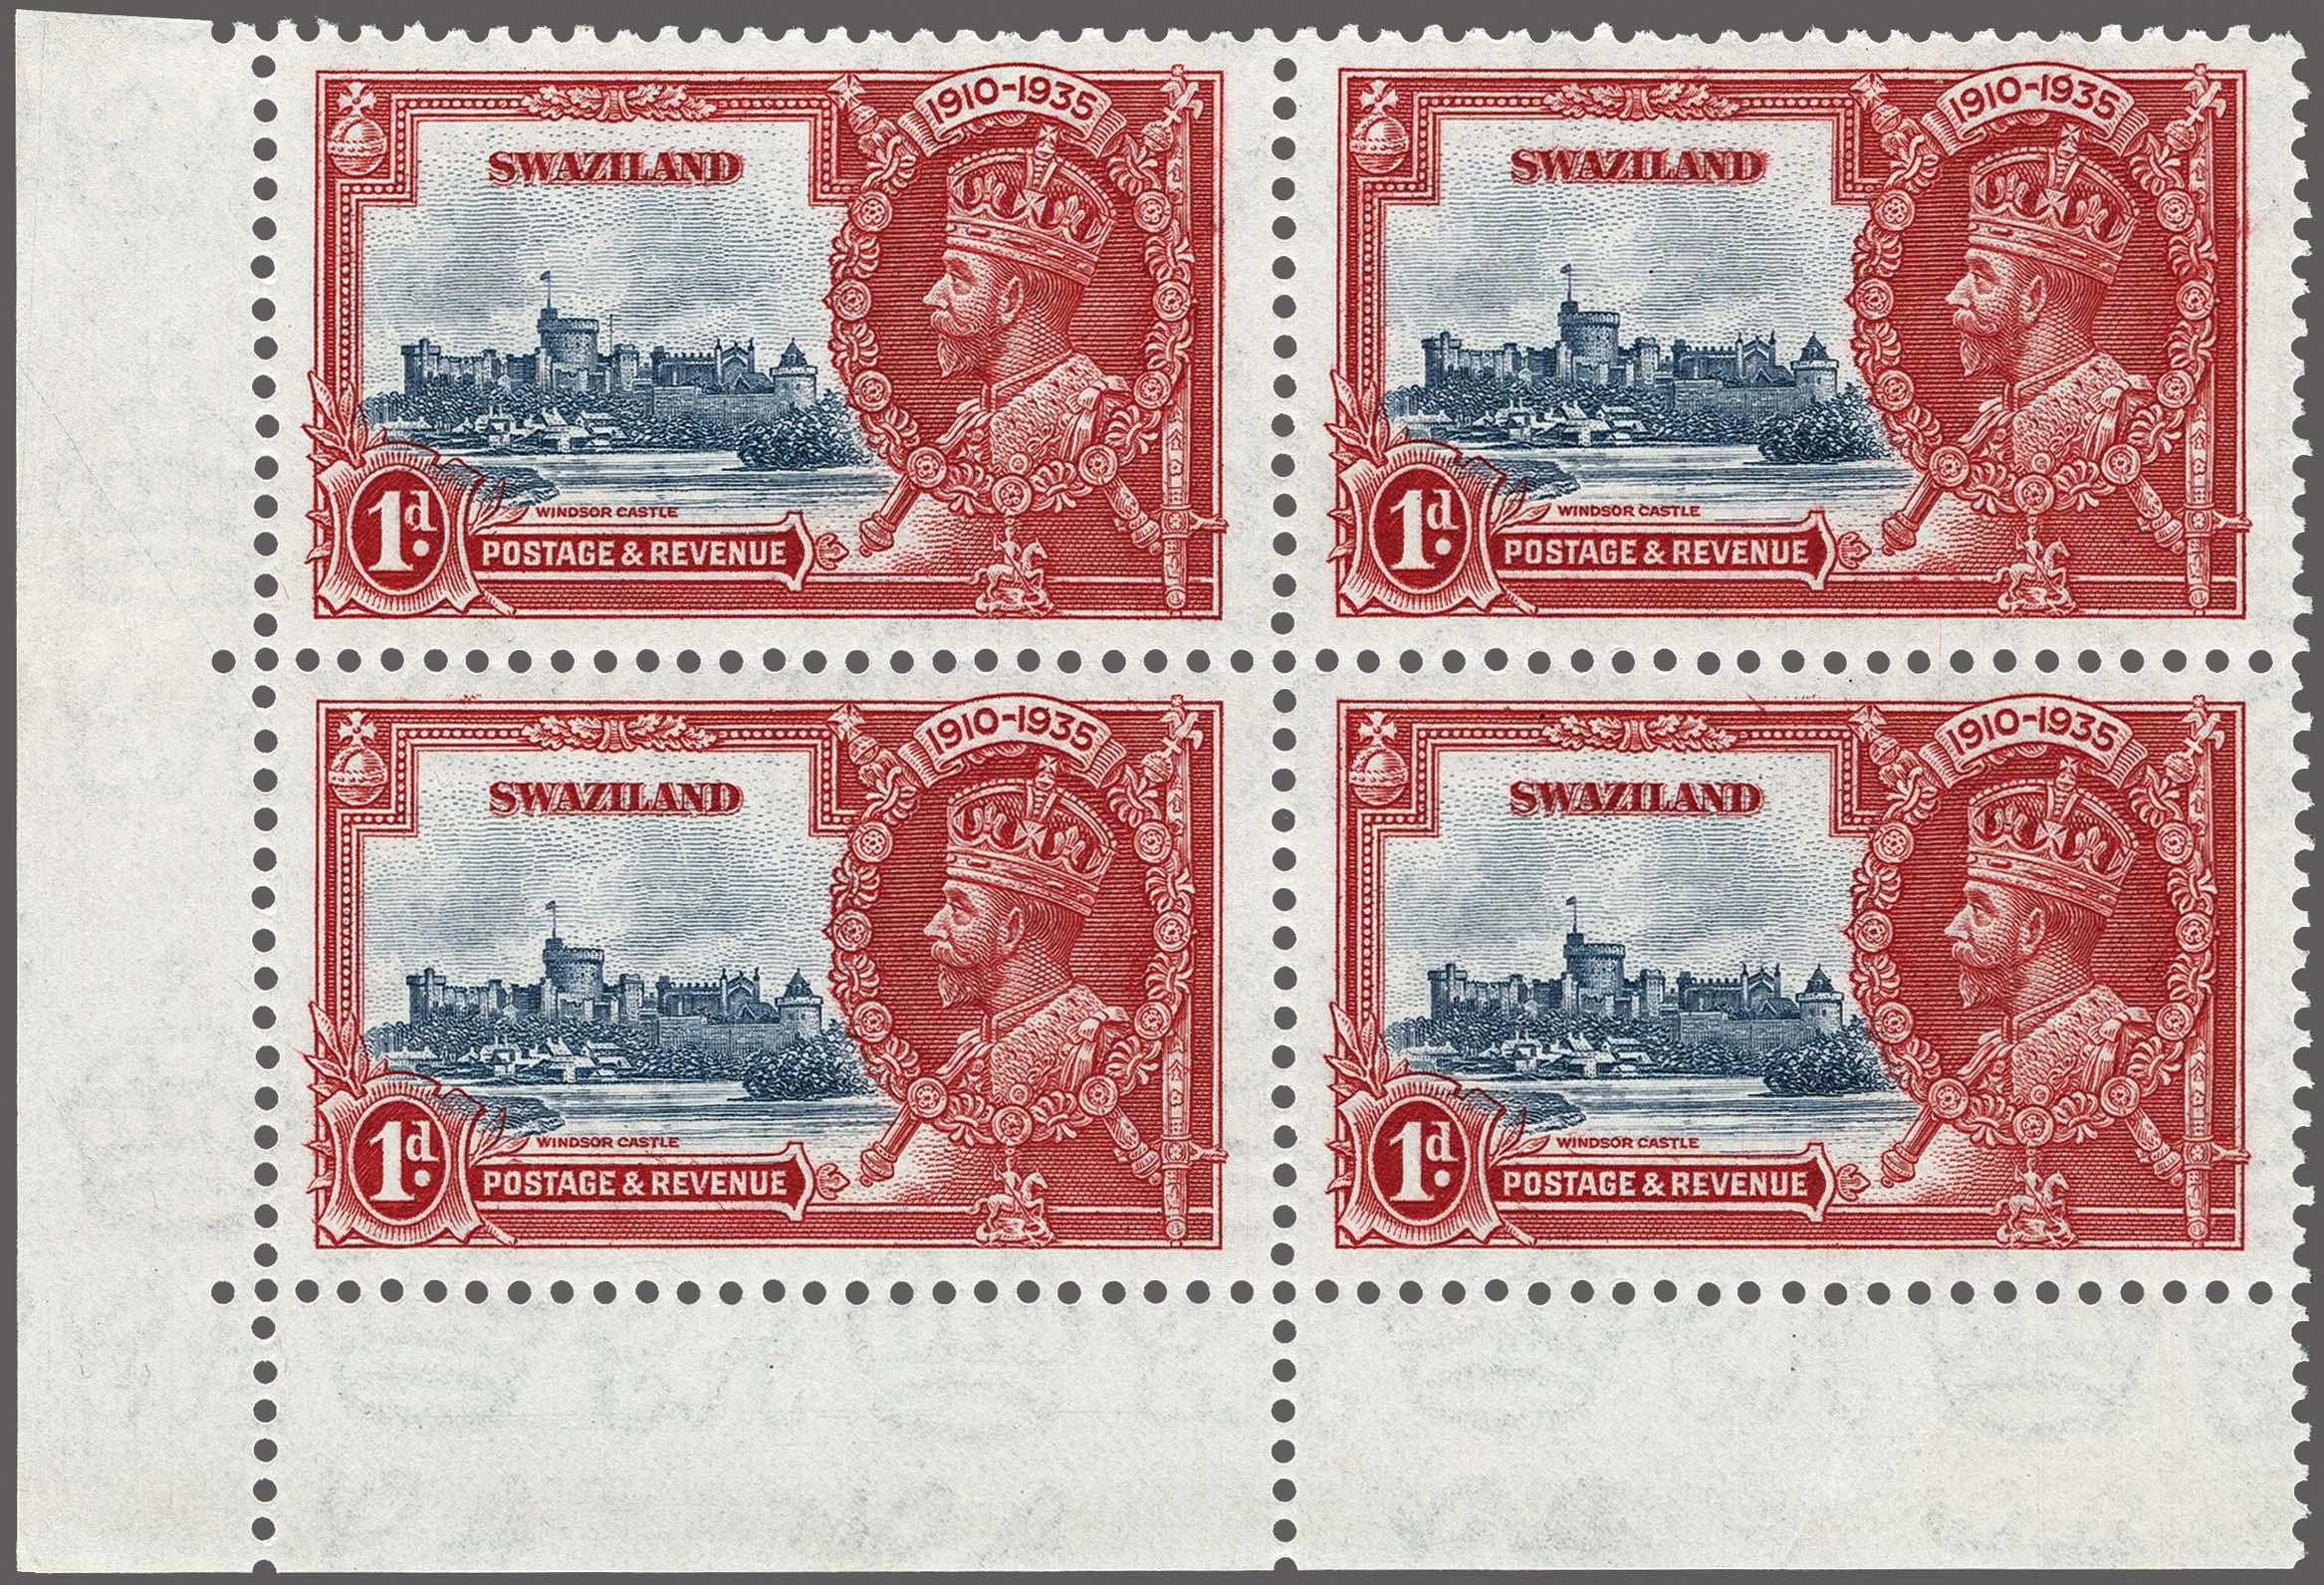 Lot 168 - Great Britain and former colonies swaziland -  Corinphila Veilingen Auction 250-253 - Day 1 - Foreign countries